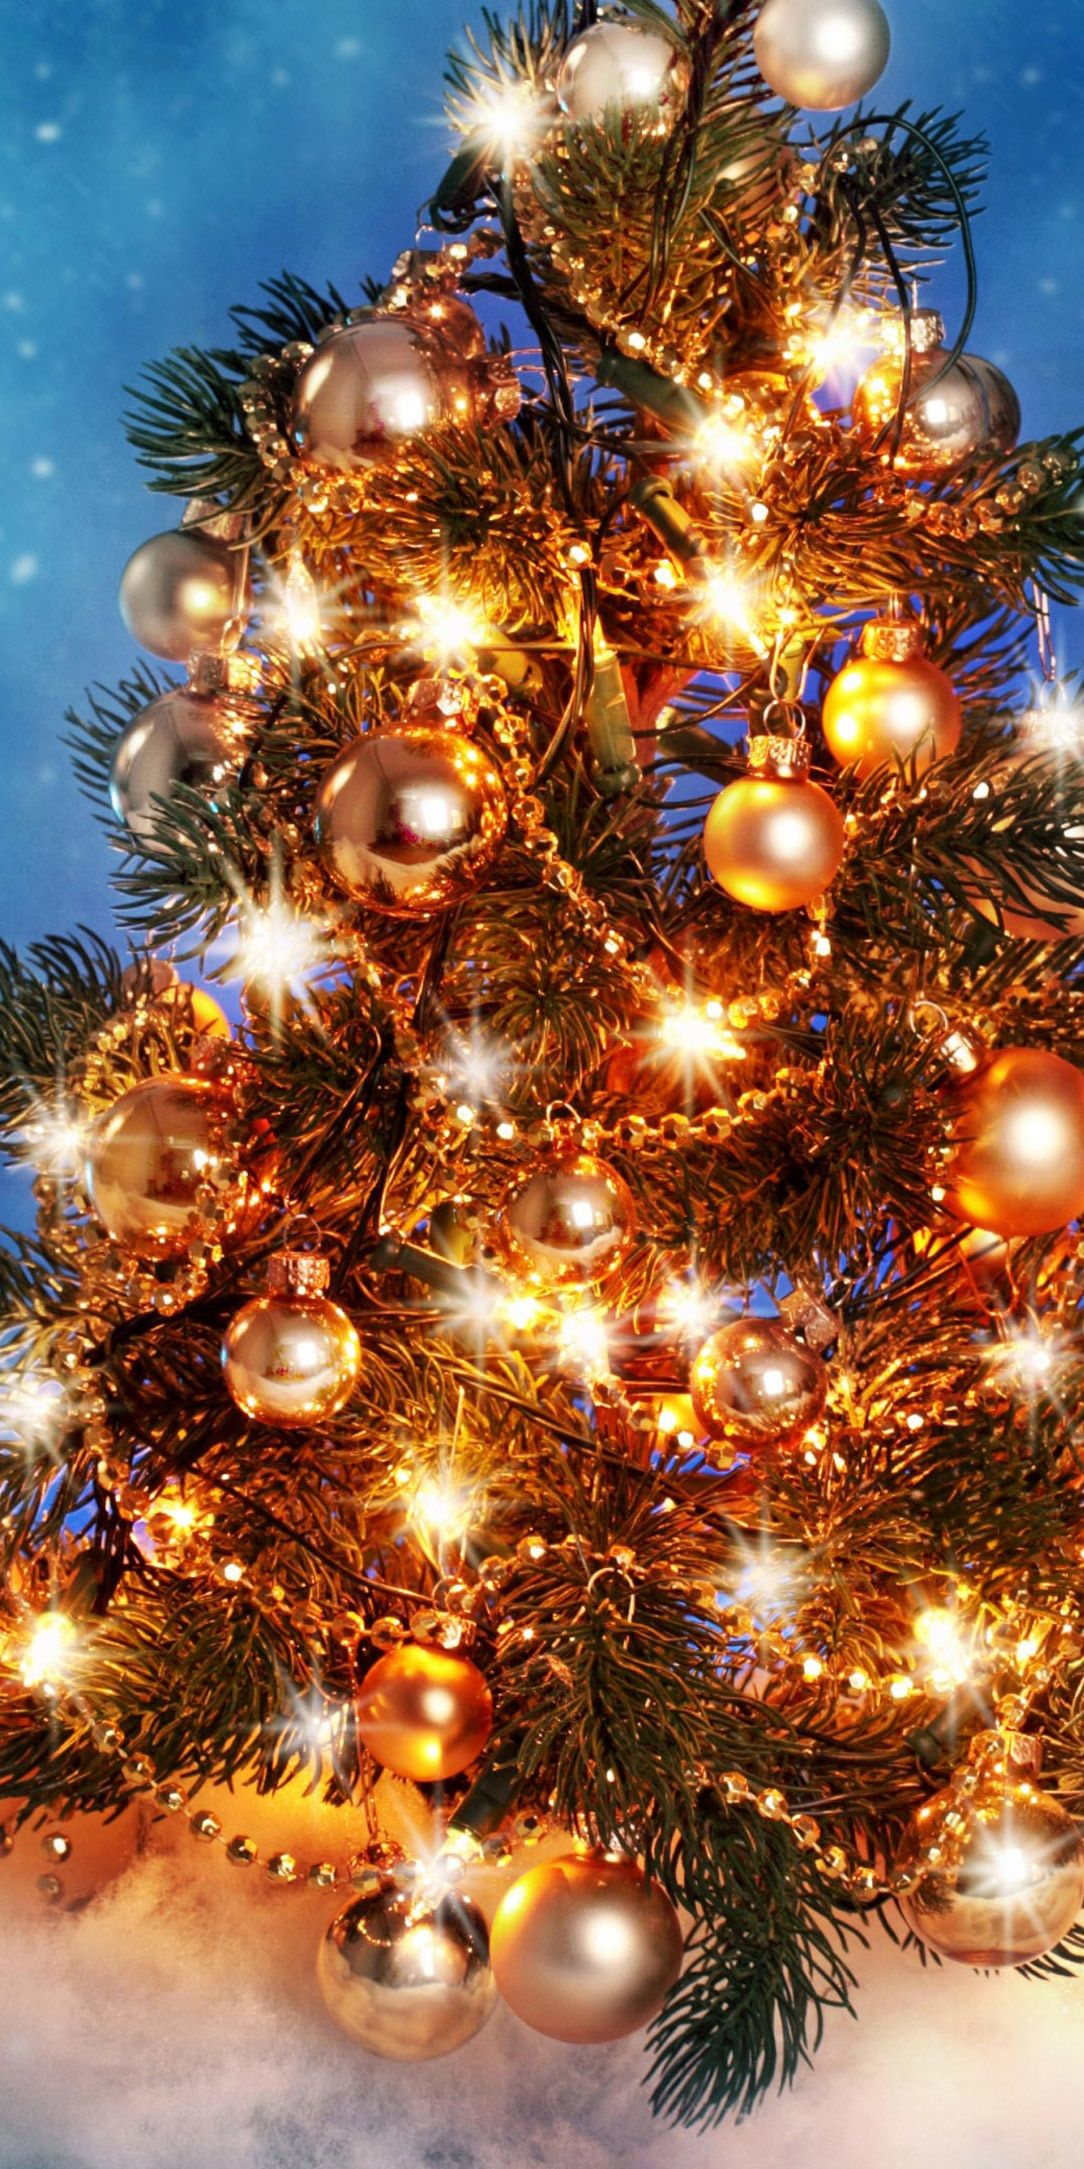 Christmas HD and Widescreen Wallpapers Christmas Tree